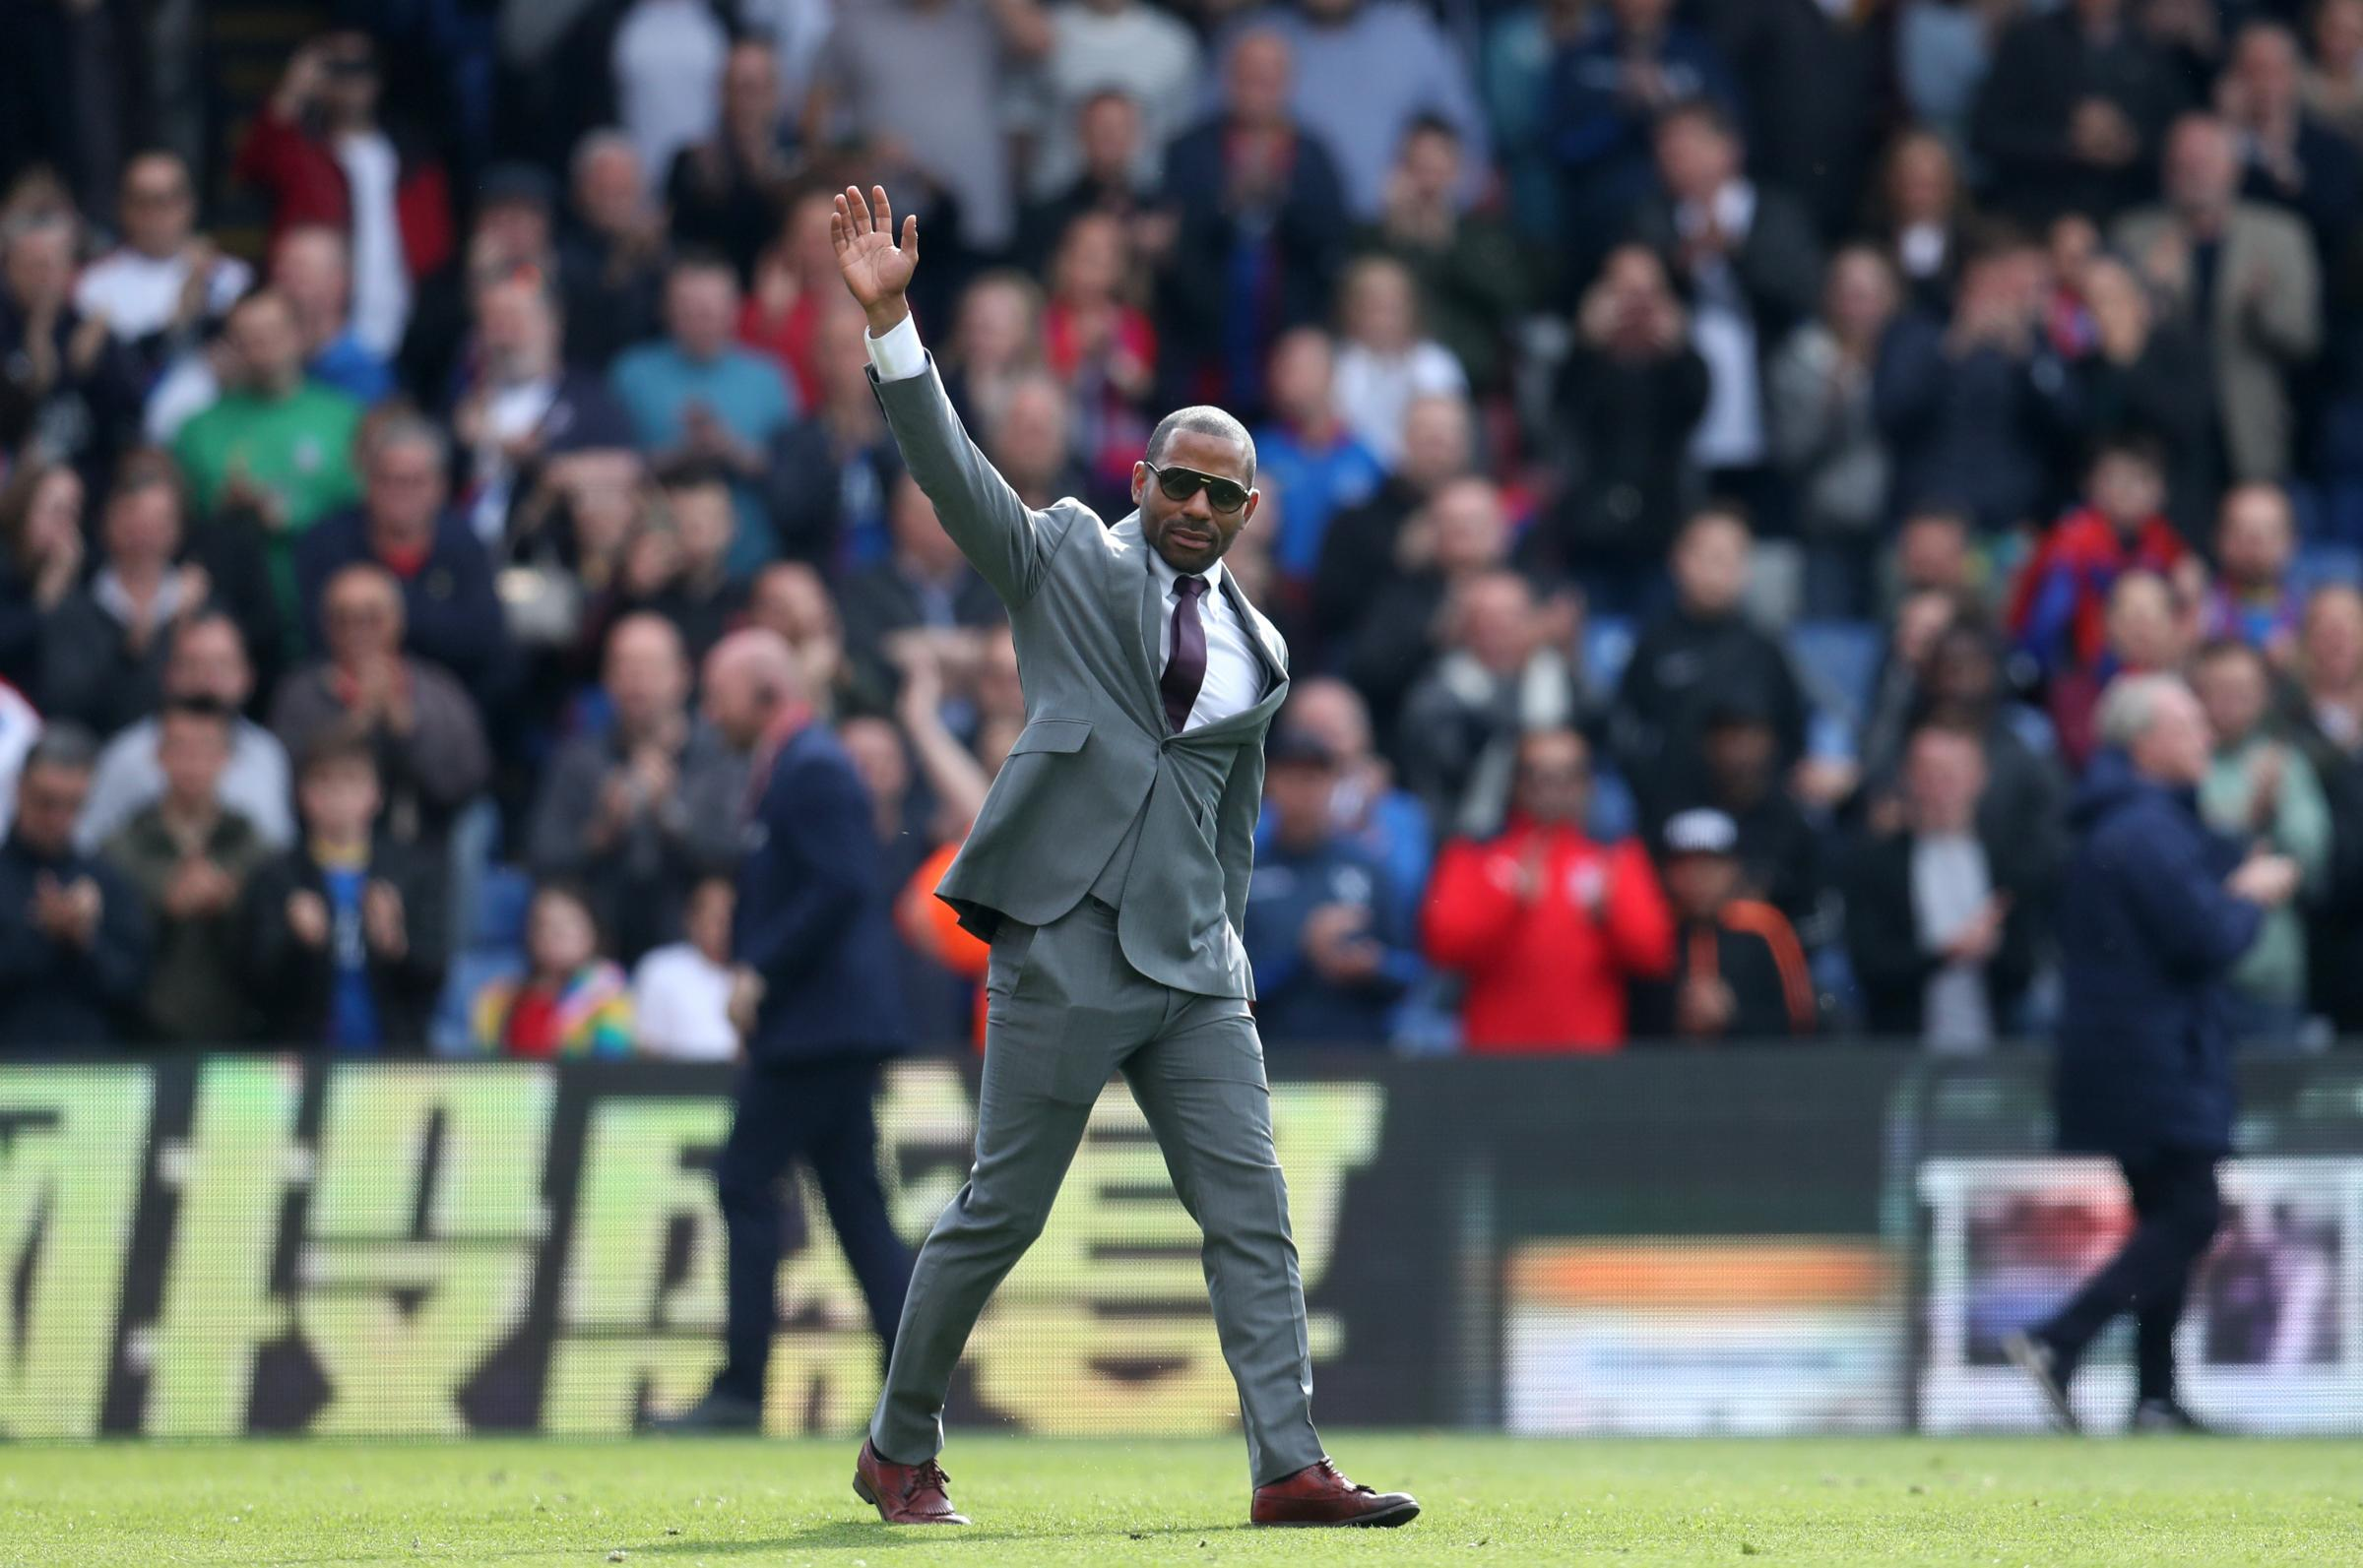 Emotional goodbye to two Palace legends - 'Forever one of us'